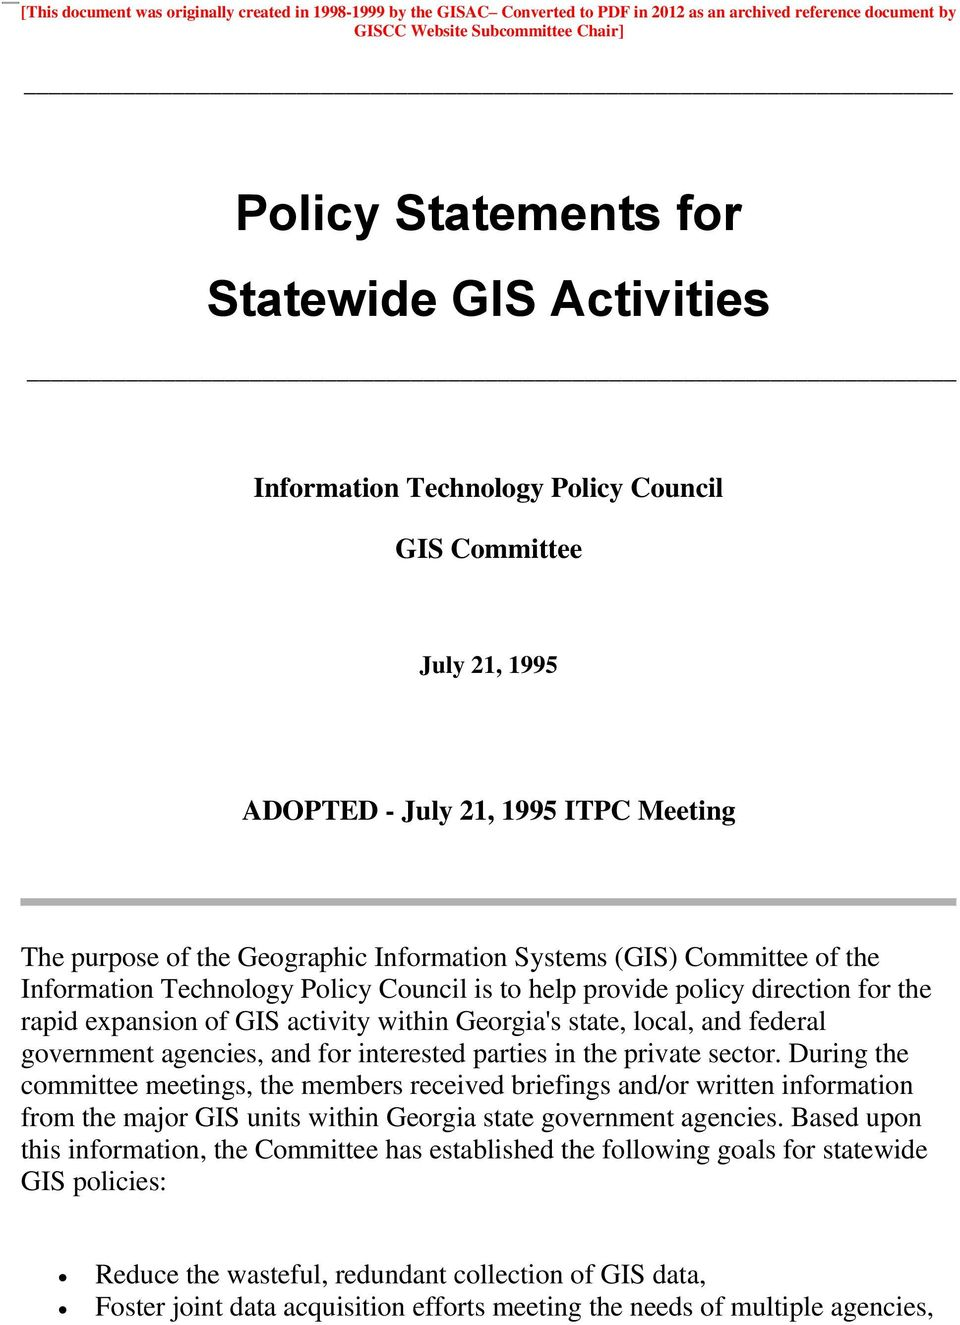 Technology Policy Council is to help provide policy direction for the rapid expansion of GIS activity within Georgia's state, local, and federal government agencies, and for interested parties in the